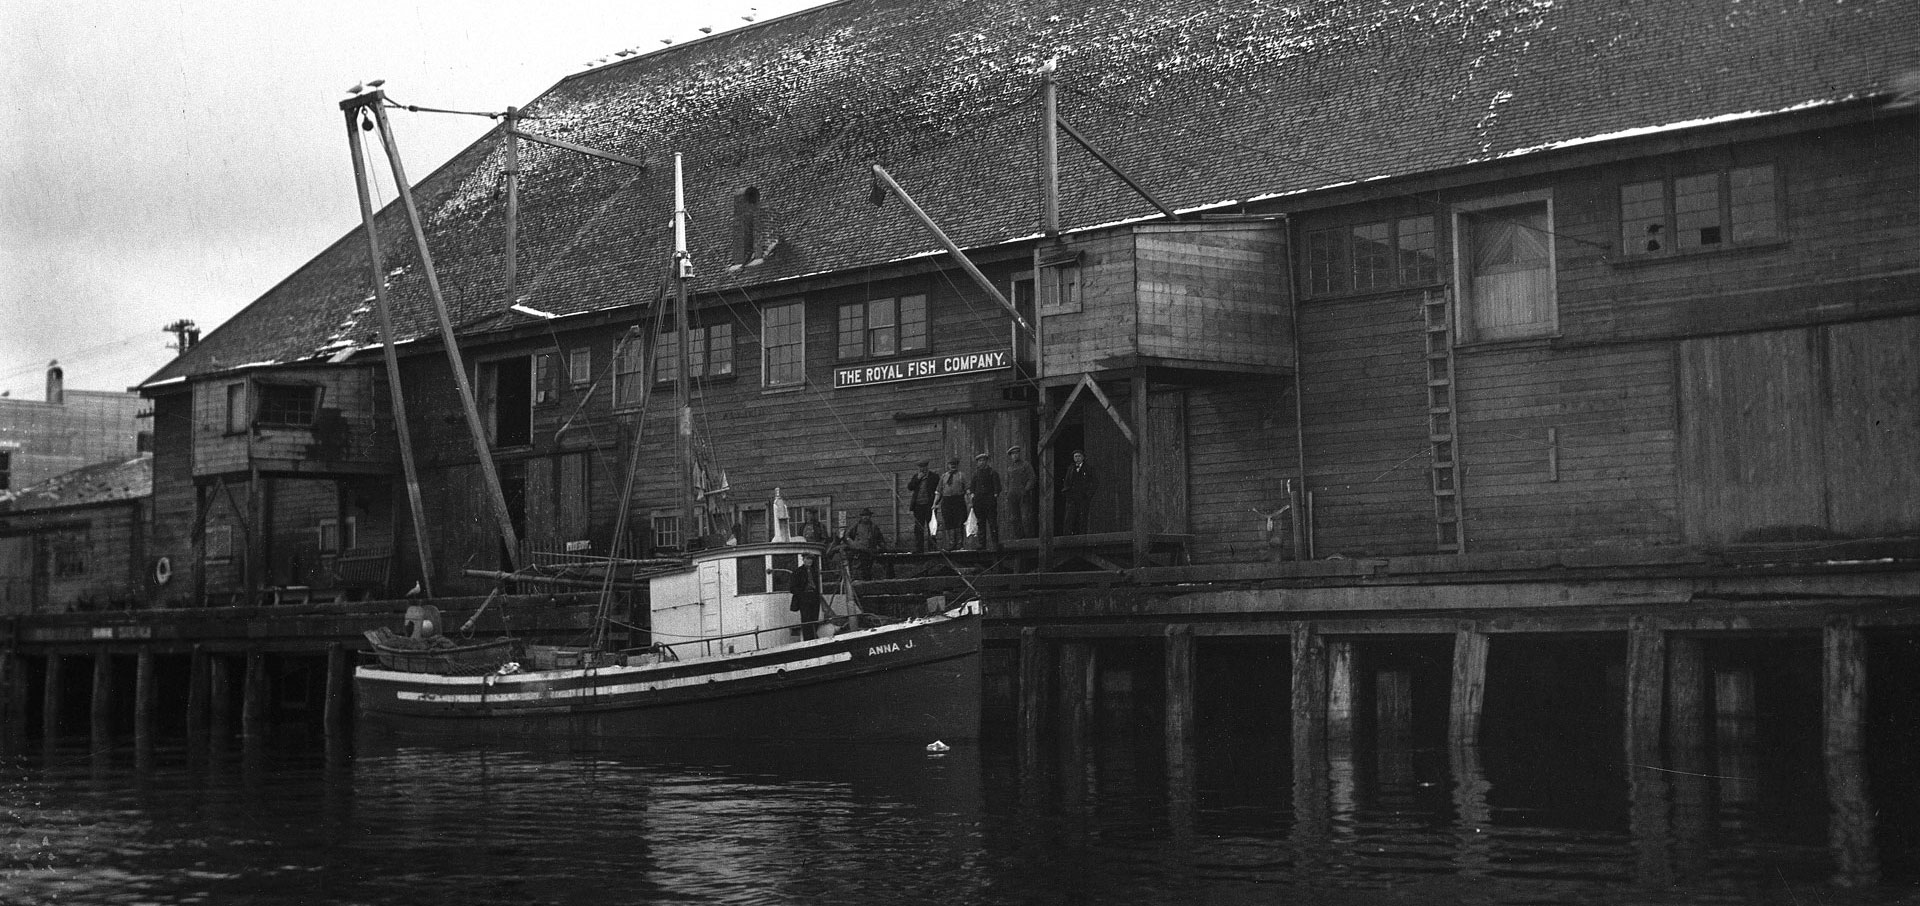 Boat docked at the Royal Fish Company plant. Several men stand by the wooden building holding fish